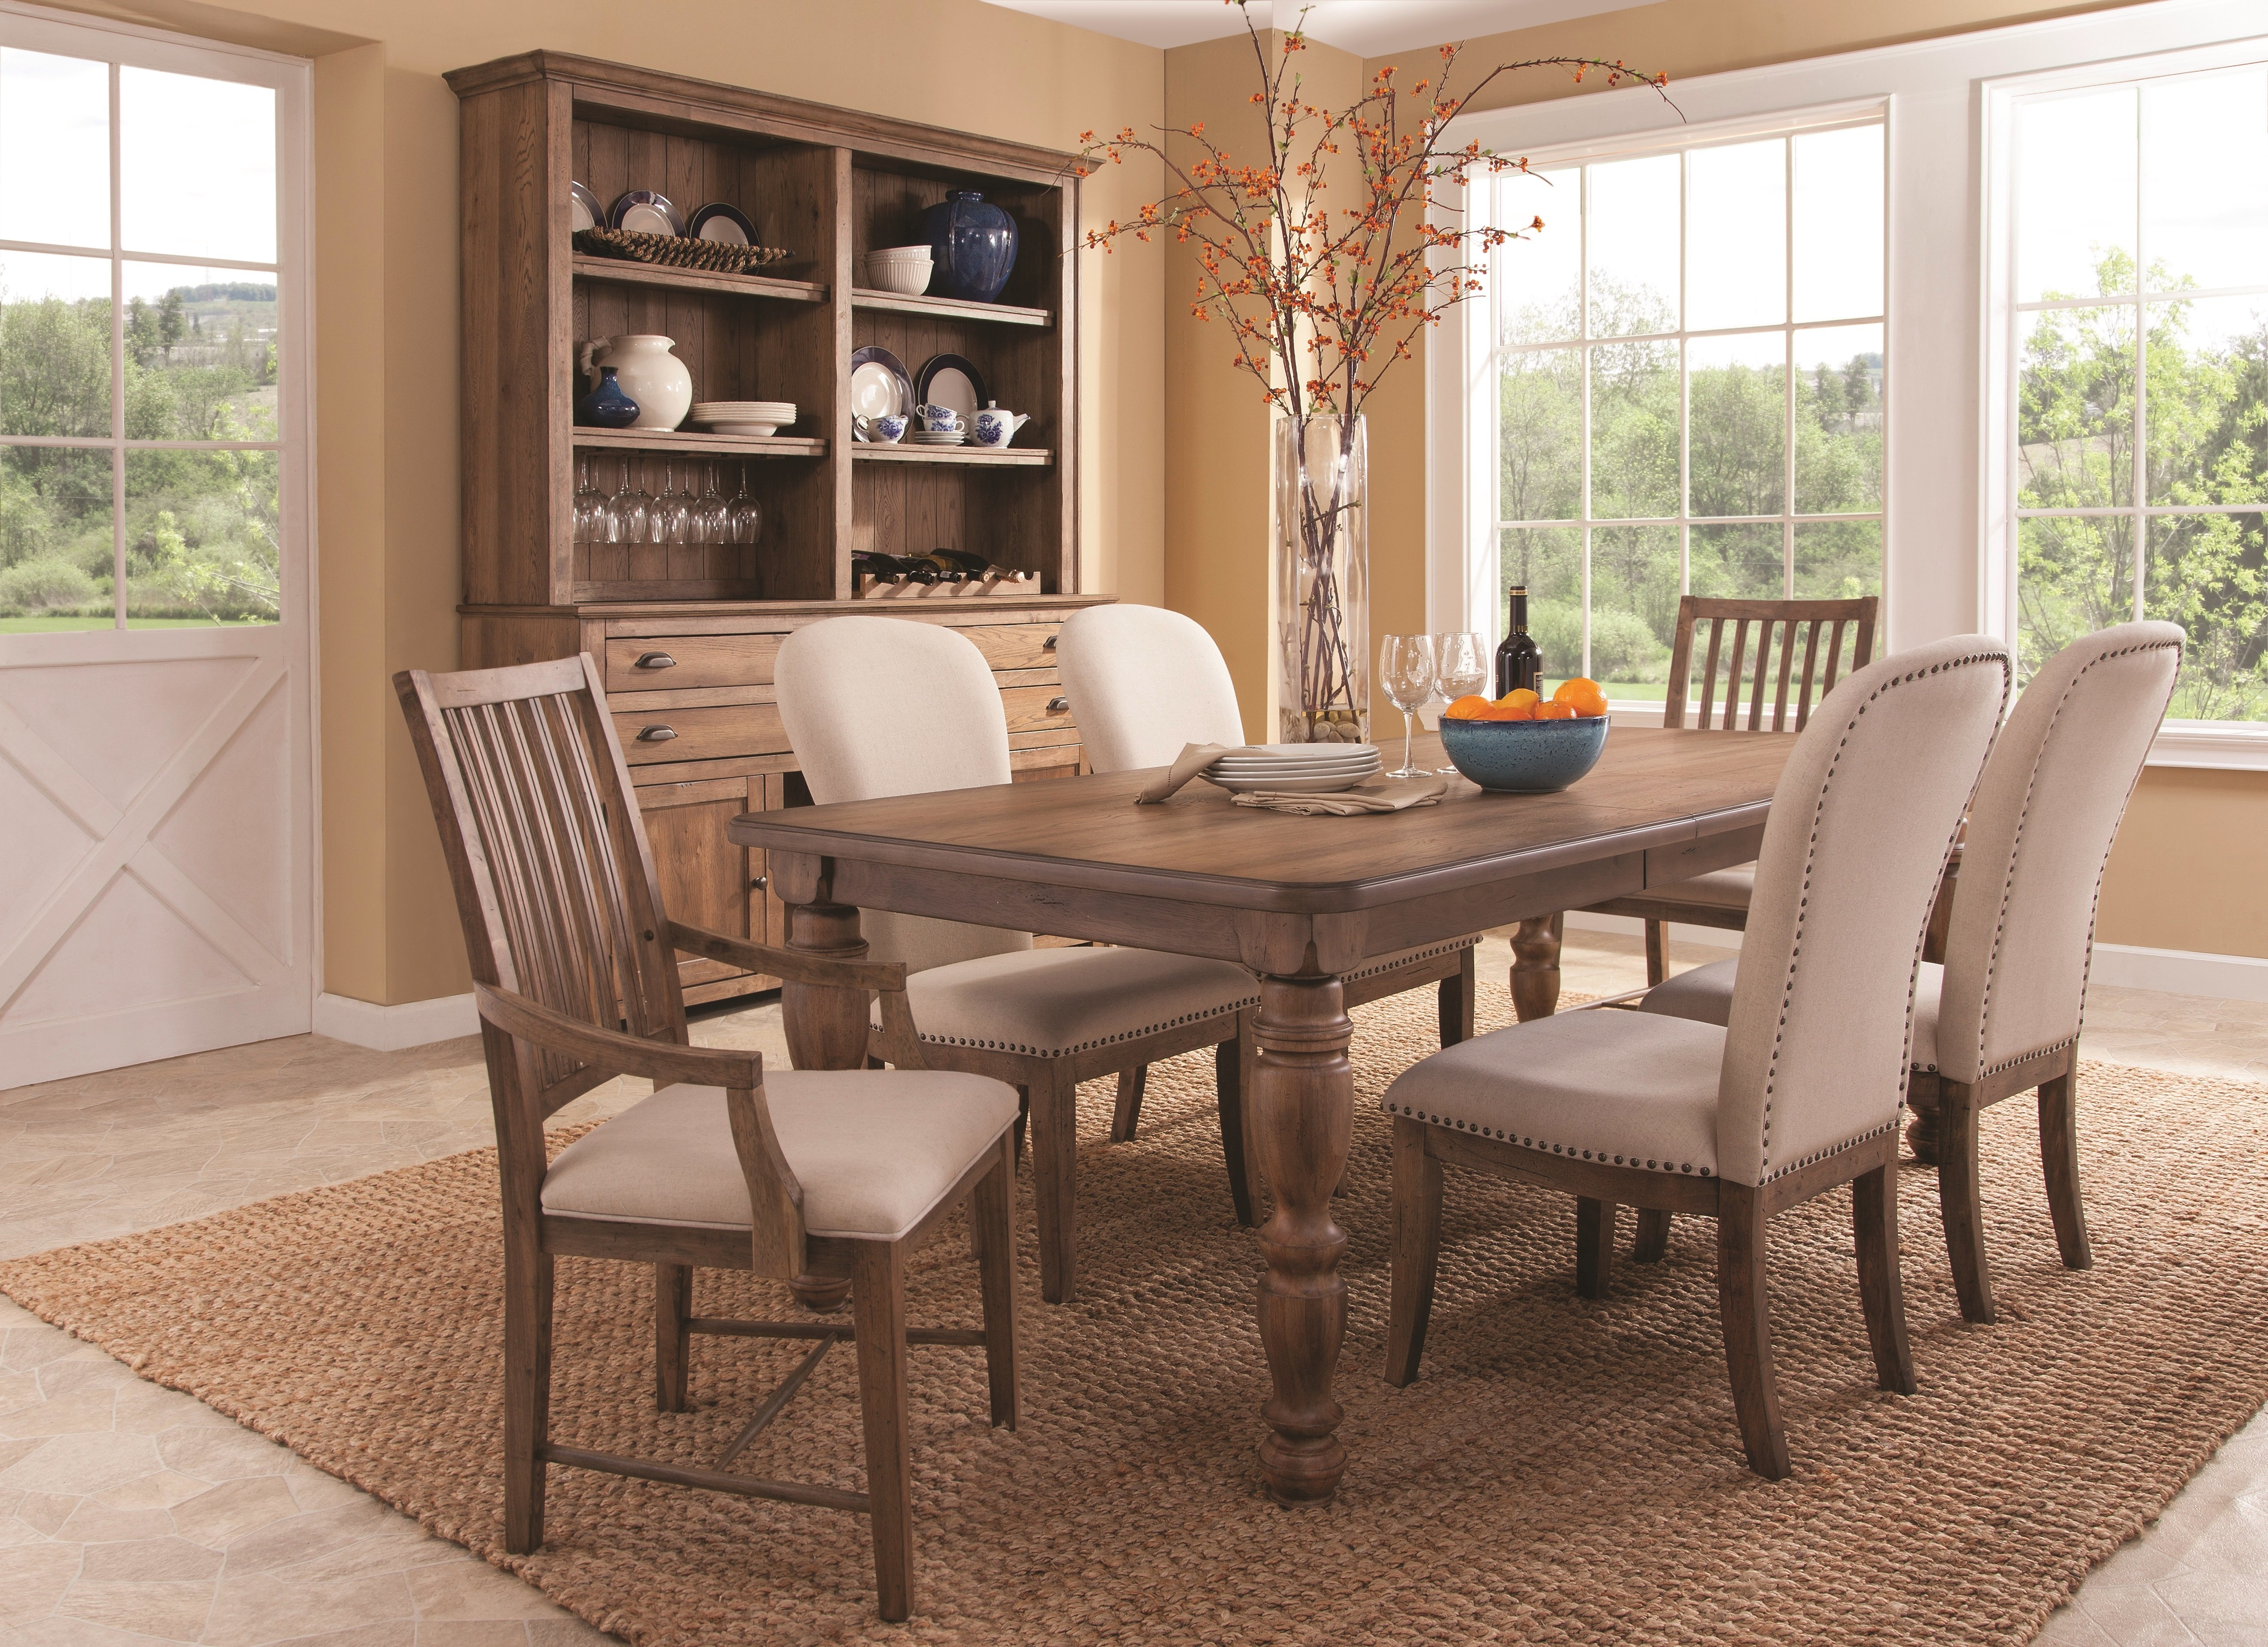 2017 Panama Jack South Mountain Farmhouse Extendable Dining Table Set For Extendable Dining Tables Sets (View 7 of 25)